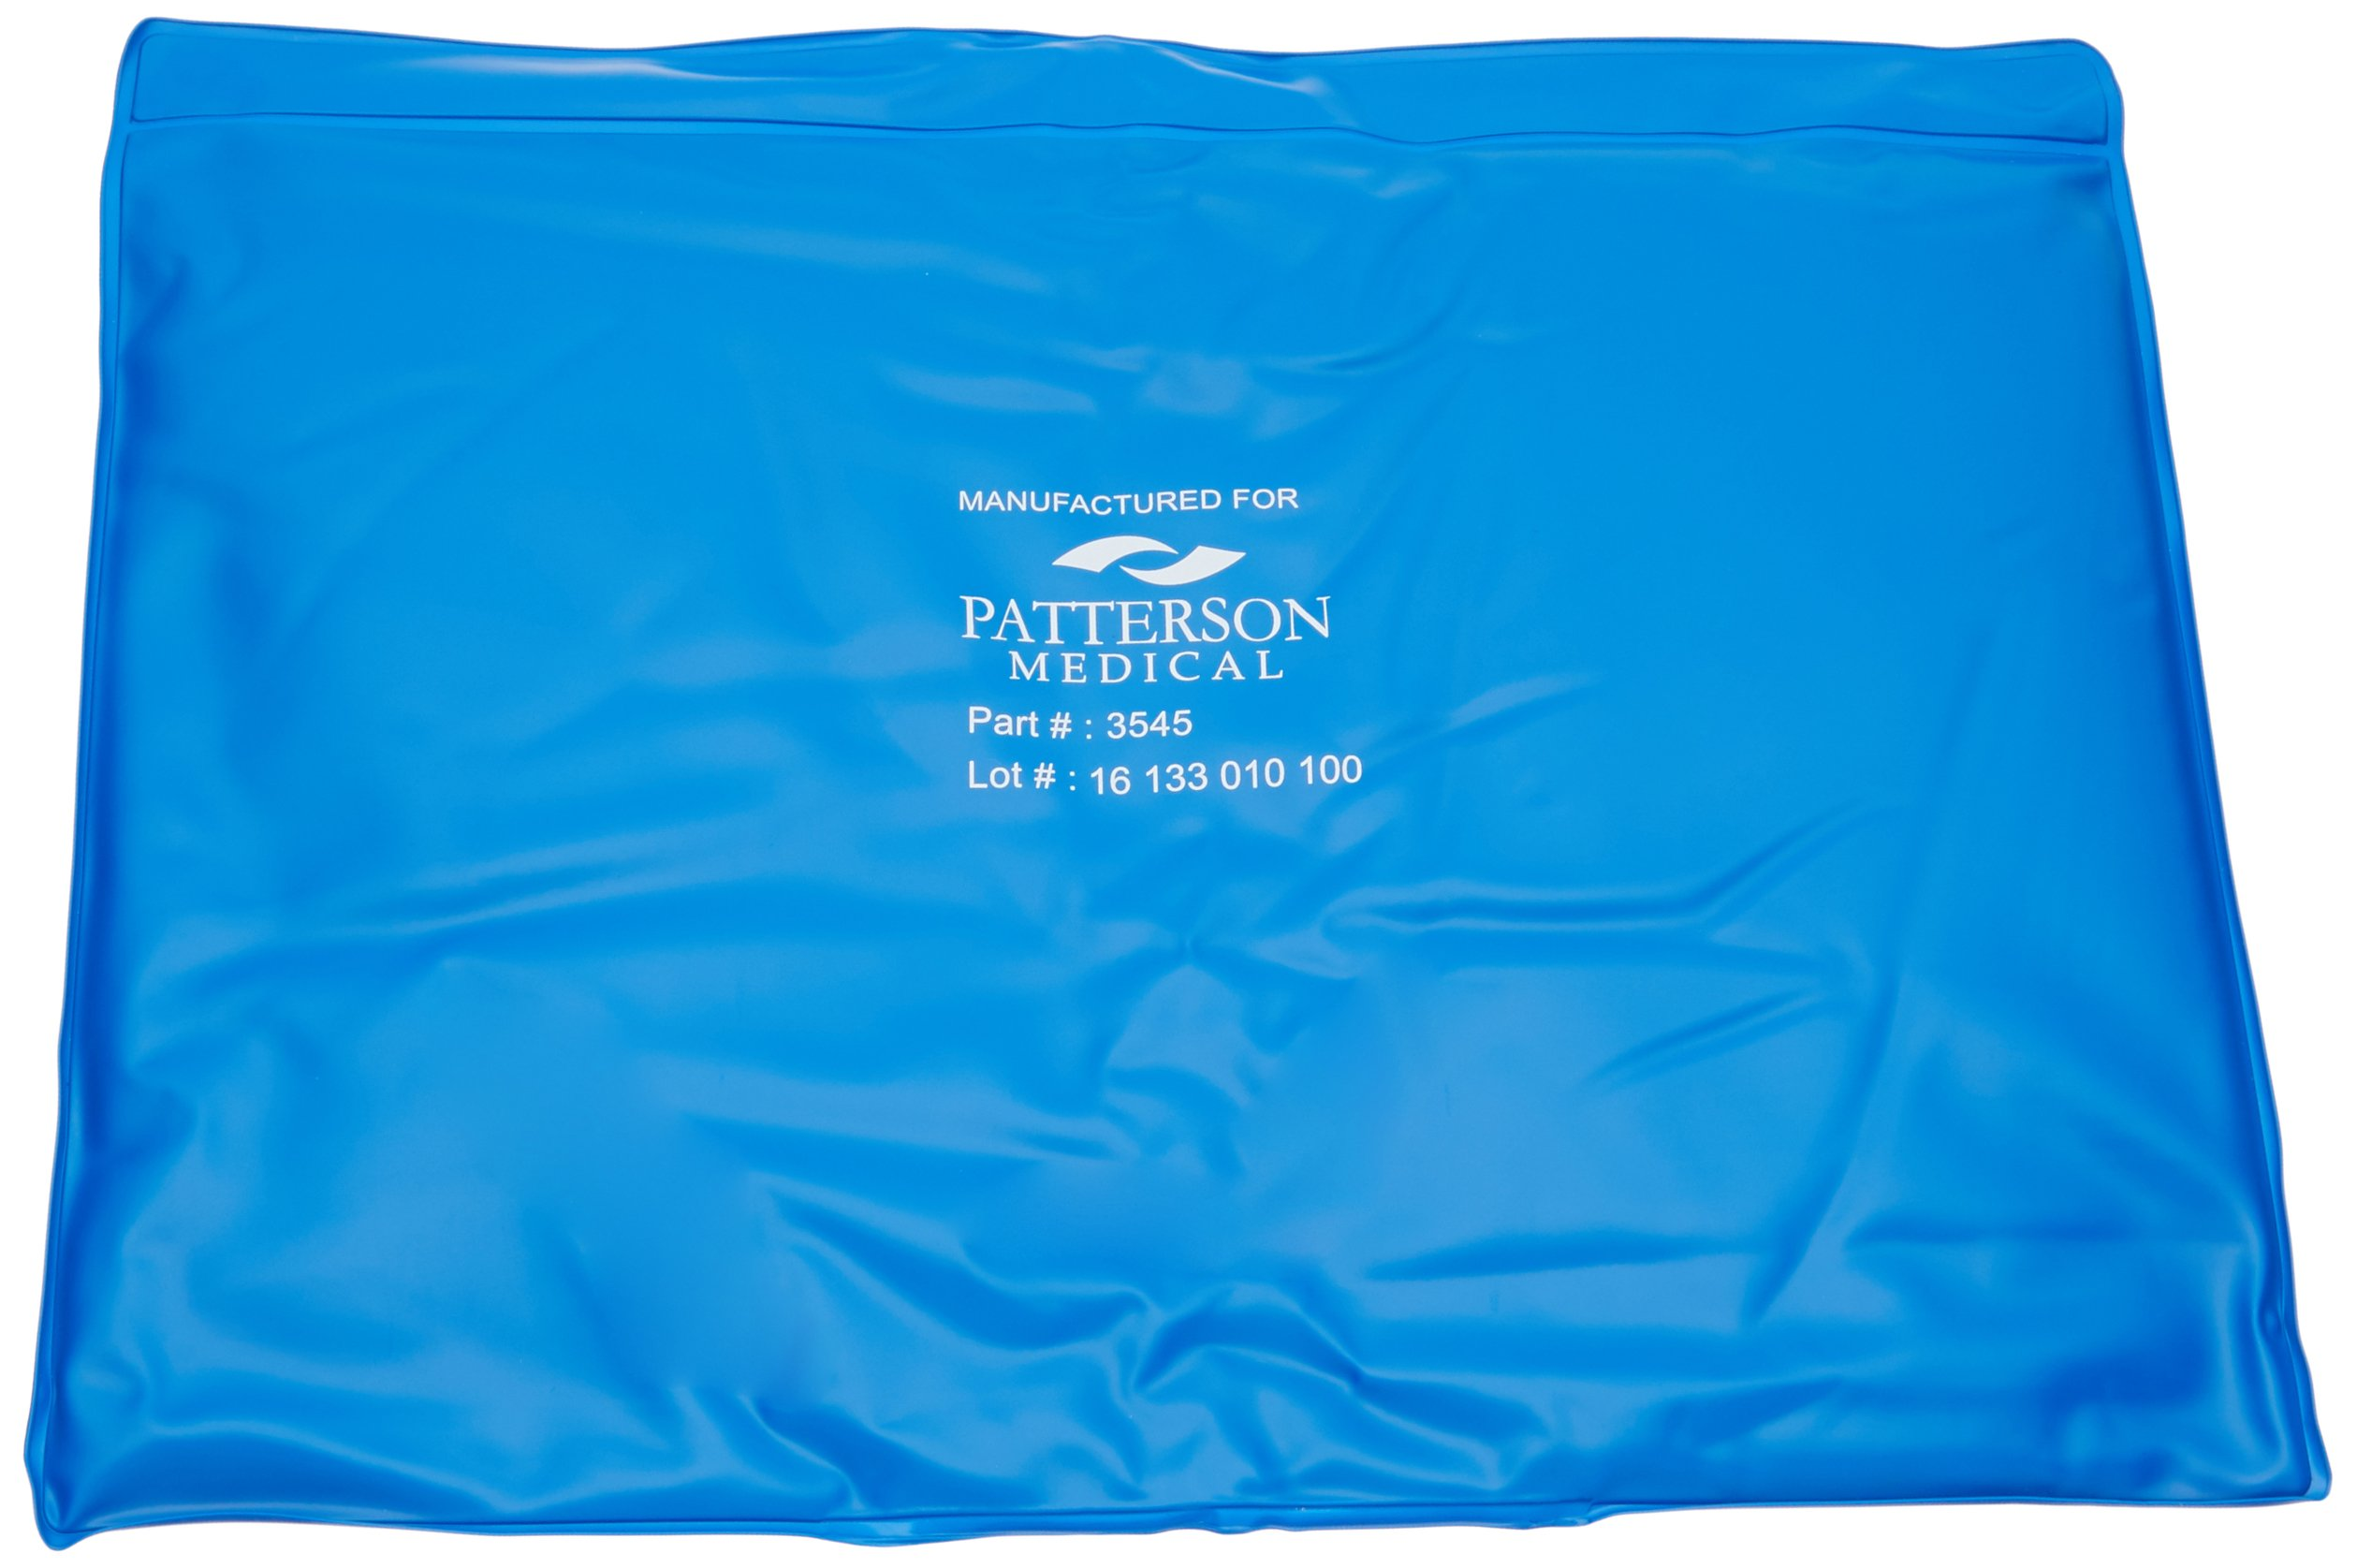 """Performa Standard Cold Pac, Reusable Flexible Ice Pack, Professional Medical Grade Refreezable Coldpac for Cryotherapy After Surgery or Injury, Non Latex, Standard Size Rectangle 11"""" x 14"""""""